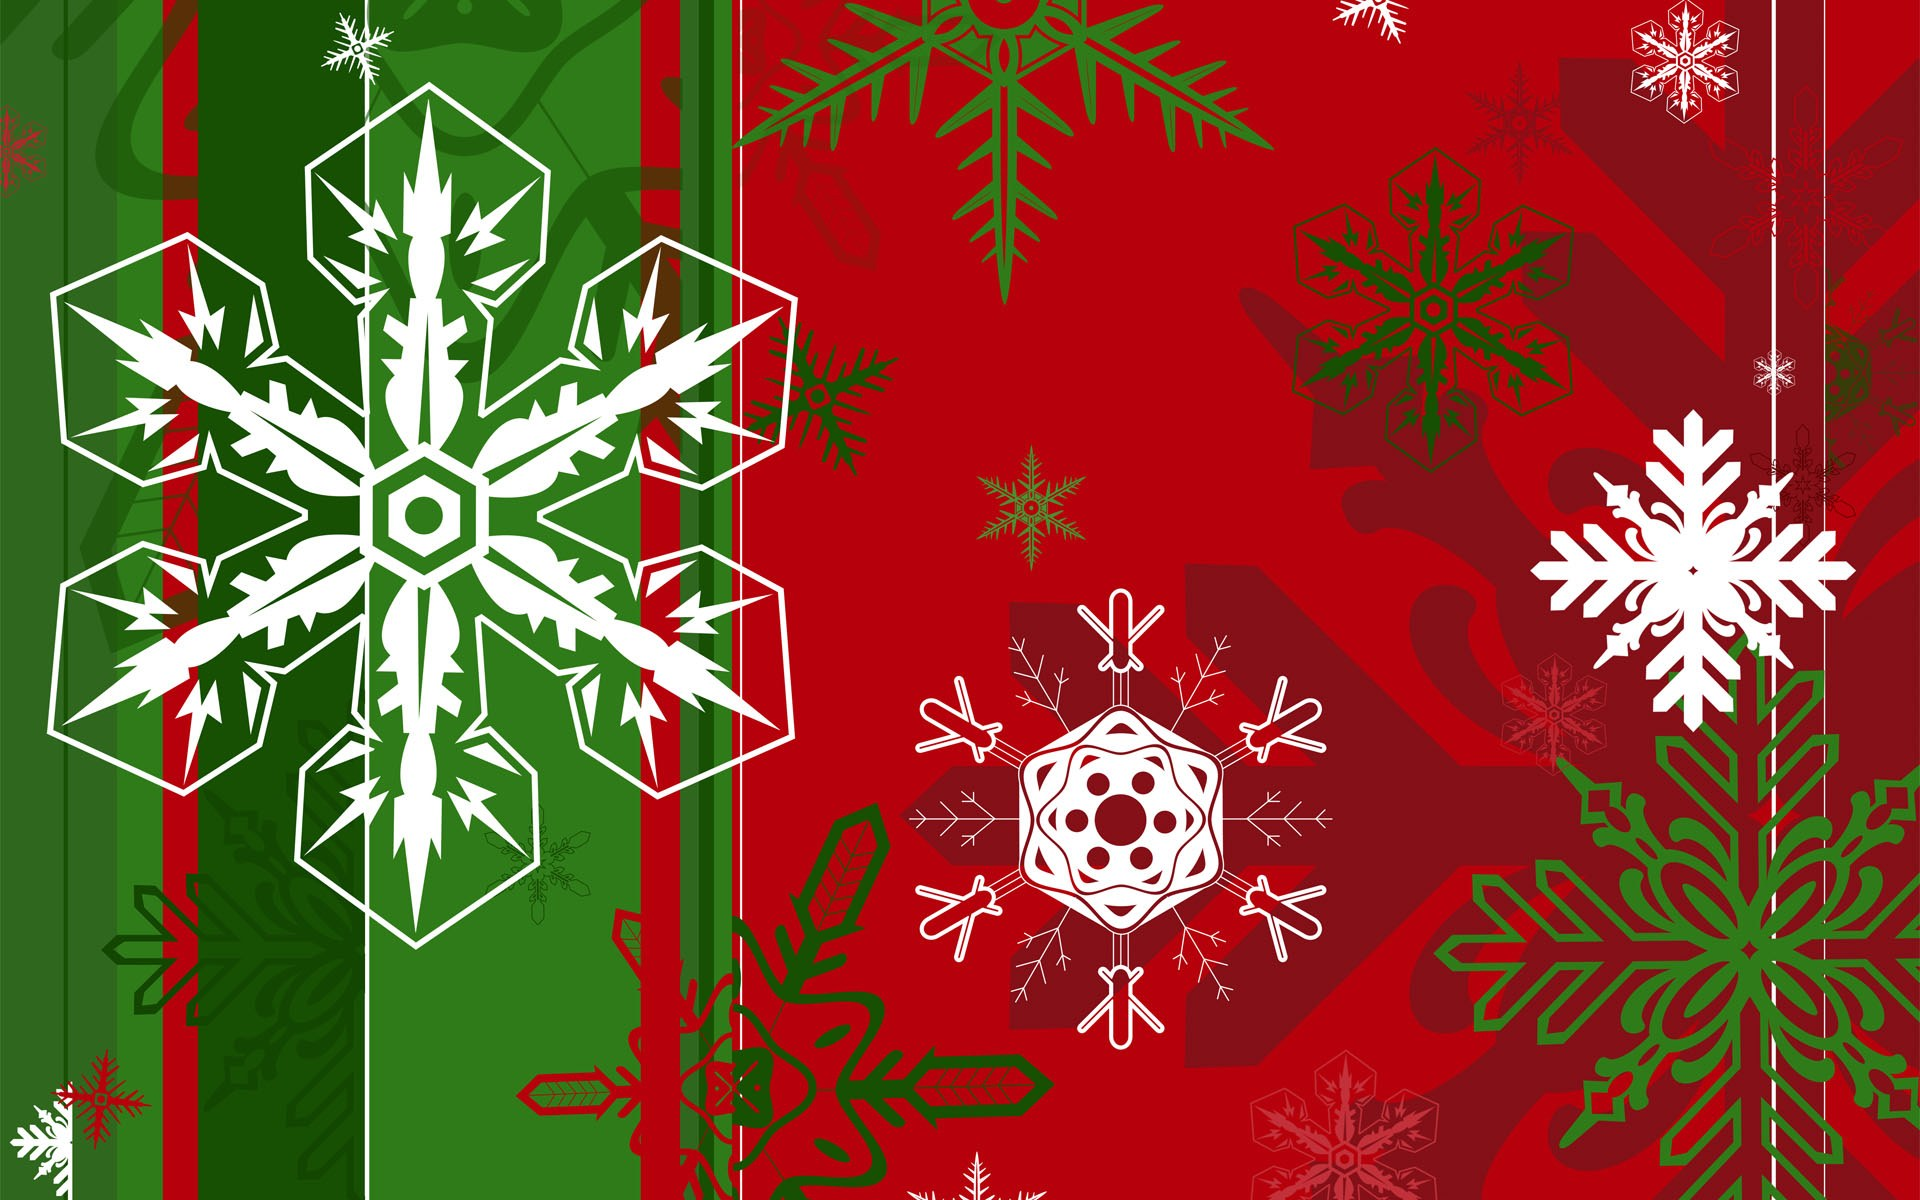 50 Christmas Paintings Wallpaper Pictures On Wallpapersafari